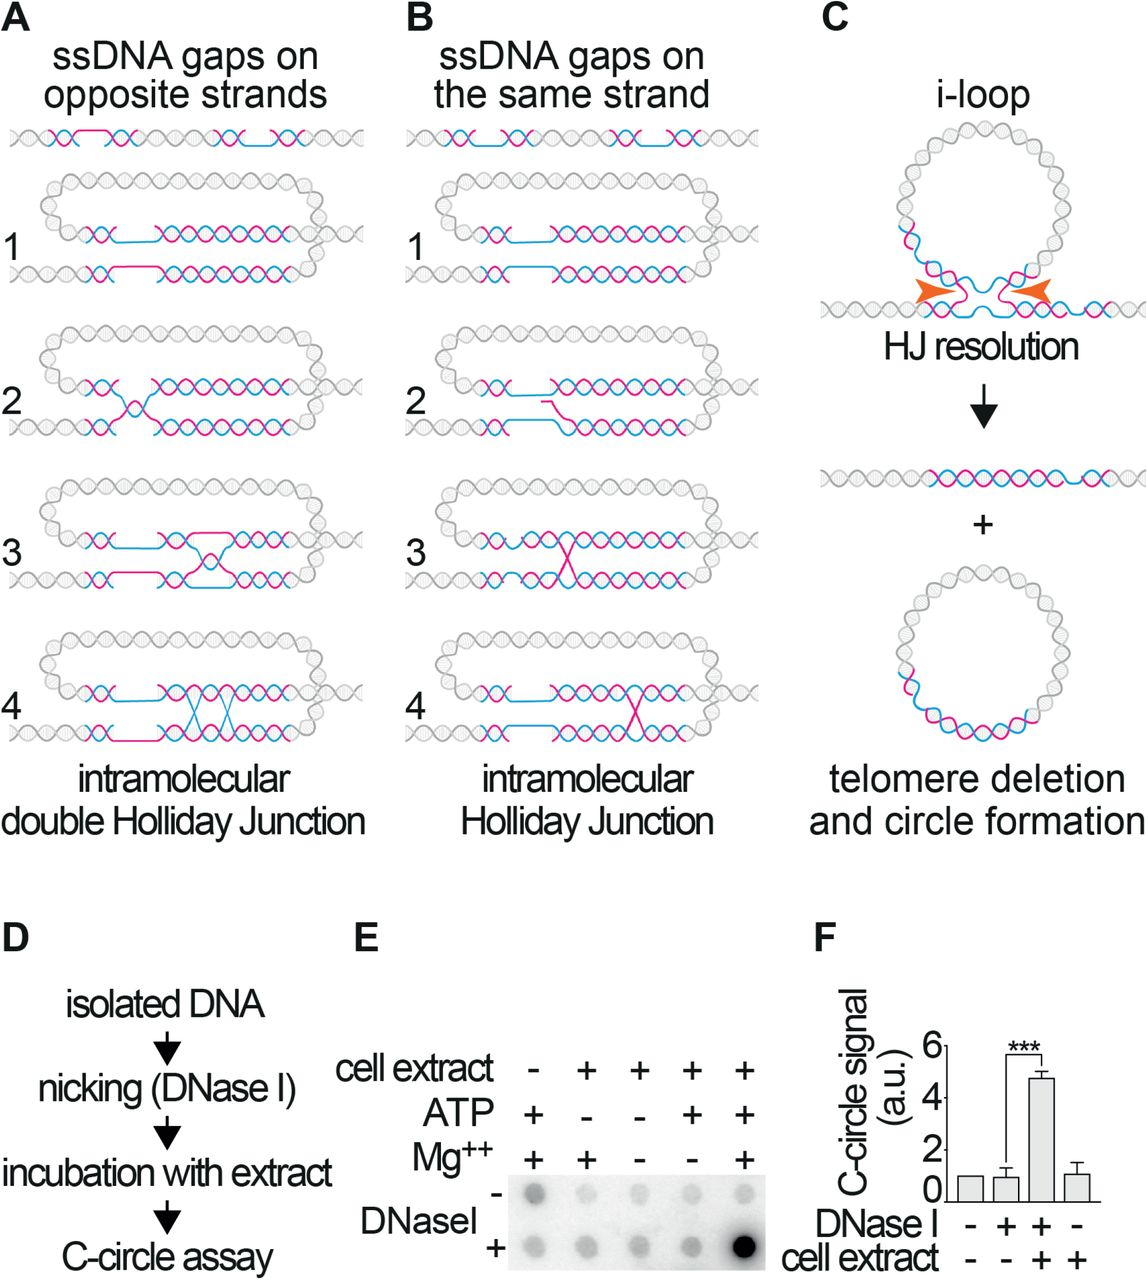 I-loops are a substrate for the generation of extrachromosomal telomeric circles. A.  Model for the formation of i-loops, in the presence of short single-strand gaps on opposite telomeric strands (i.e. one gap on the G-strand and one on the C-strand of the same molecule). Exposed complementary DNA can come in close proximity by looping and undergo base pairing (step 1). Plectonemic pairing can occur simply by strand rotation, resulting in the formation of an i-loop that will resemble a DNA knot (step 2). The loop junction could branch migrate as a hemicatenane (step 3) that could be transformed in a double Holliday junction by the pairing of the opposite strands (step 4). B.  Model for the formation of i-loops, in the presence of short single-strand gaps on the same telomeric strand (i.e. both gaps on the G or on the C strand of the same molecule). The gaps can come in close proximity by DNA looping (step 1) and promote an exchange of the complementary strands (step 2) resulting in an intramolecular loop with a single Holliday junction at the base (step 3), that can undergo branch migration (step 4). C.  Model for the generation of the telomeric circles via the excision of i-loops. An i-loop with a Holliday Junction at the base becomes a substrate for Holliday Junction resolvases. Cleavage on the horizontal axis of the image (orange arrows) will result in the excision of the loop as a circle and telomere loss. Note that the excised circle, would contain a nick, resulting from the HJ resolution and a single-stranded gap (one of the original gaps that induced formation of the i-loop). D.  Schematic representation of the experimental procedure used to test the model shown in (C). Isolated DNA was nicked with low concentrations of DNase I, which induces the formation of i-loops at telomeres. The reaction was stopped, DNA was extracted and incubated for 30 minutes at 37°C with a HeLa nuclear extract in the presence of Mg++ and ATP, to allow HJ resolution. The DNA was the